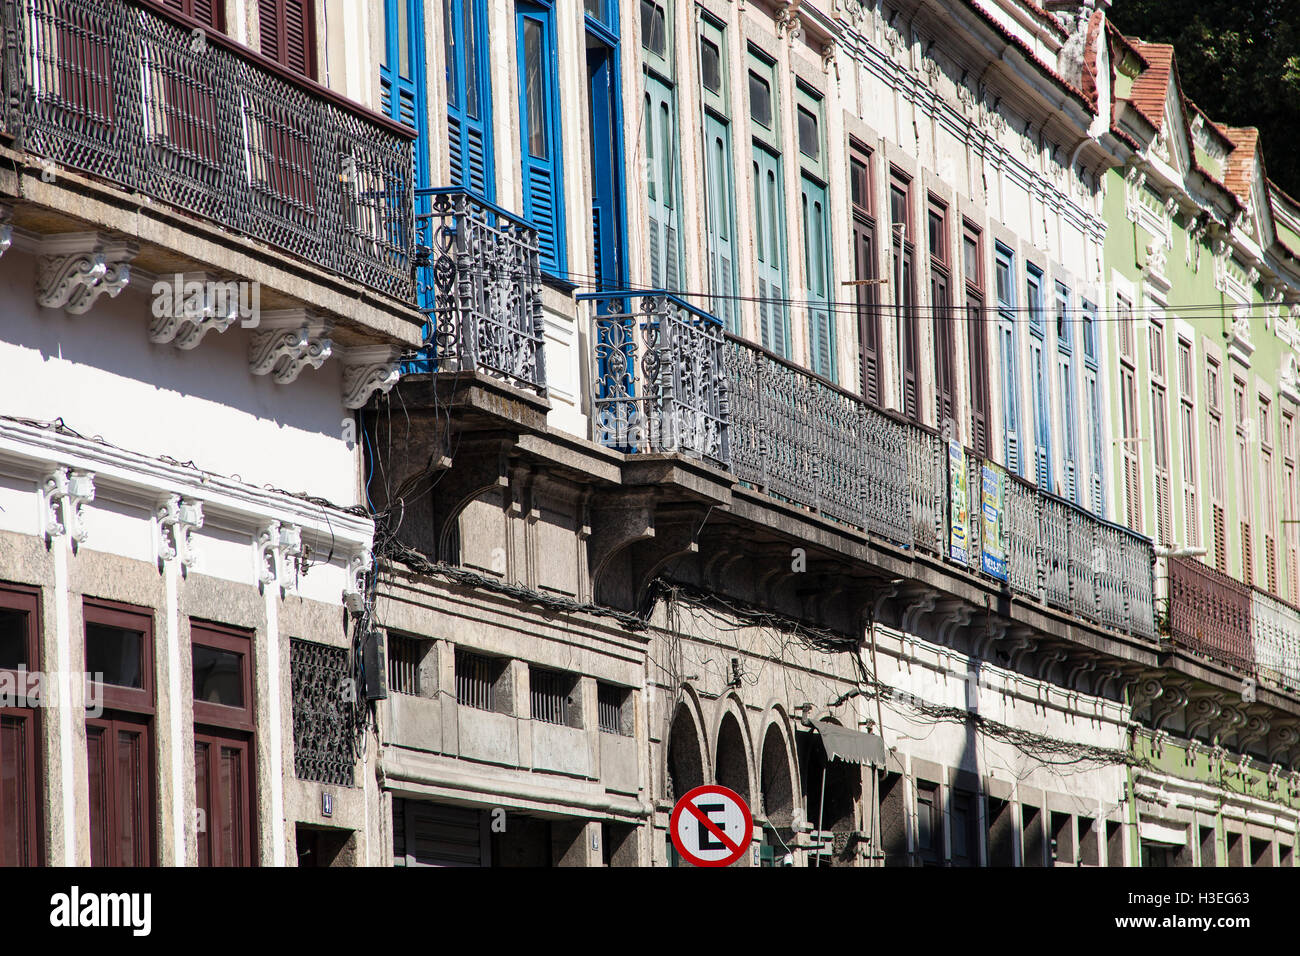 Preserved sobrados, two or more story ancient houses from the colonial and imperial periods in Brazil at Rua do - Stock Image